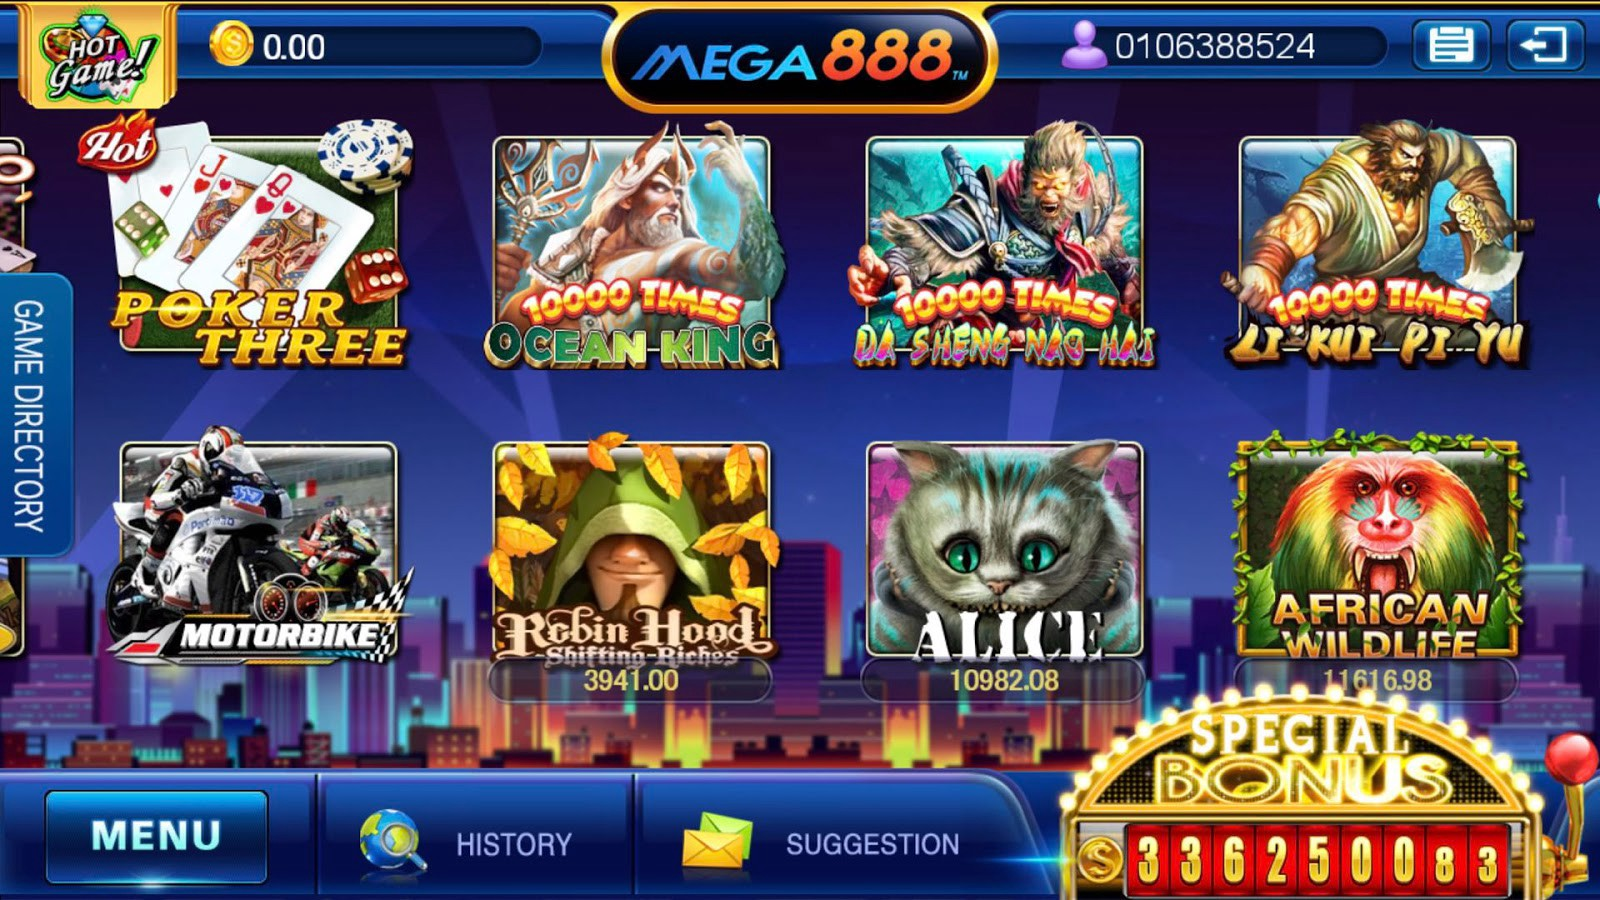 Overview of cellular casino games